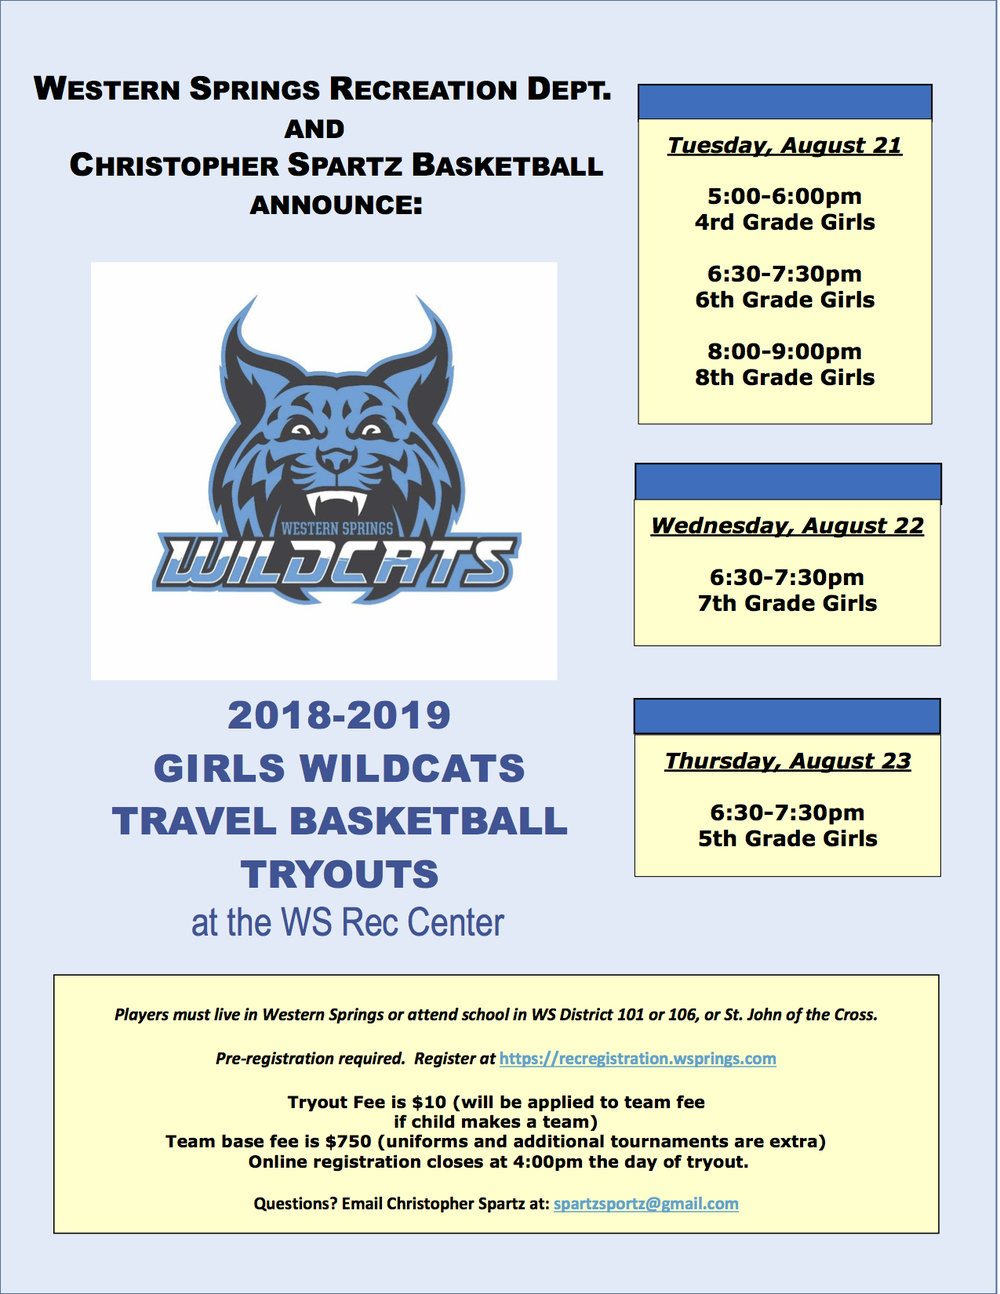 2018-2019 wildcats winter travel tryout flyer.jpg